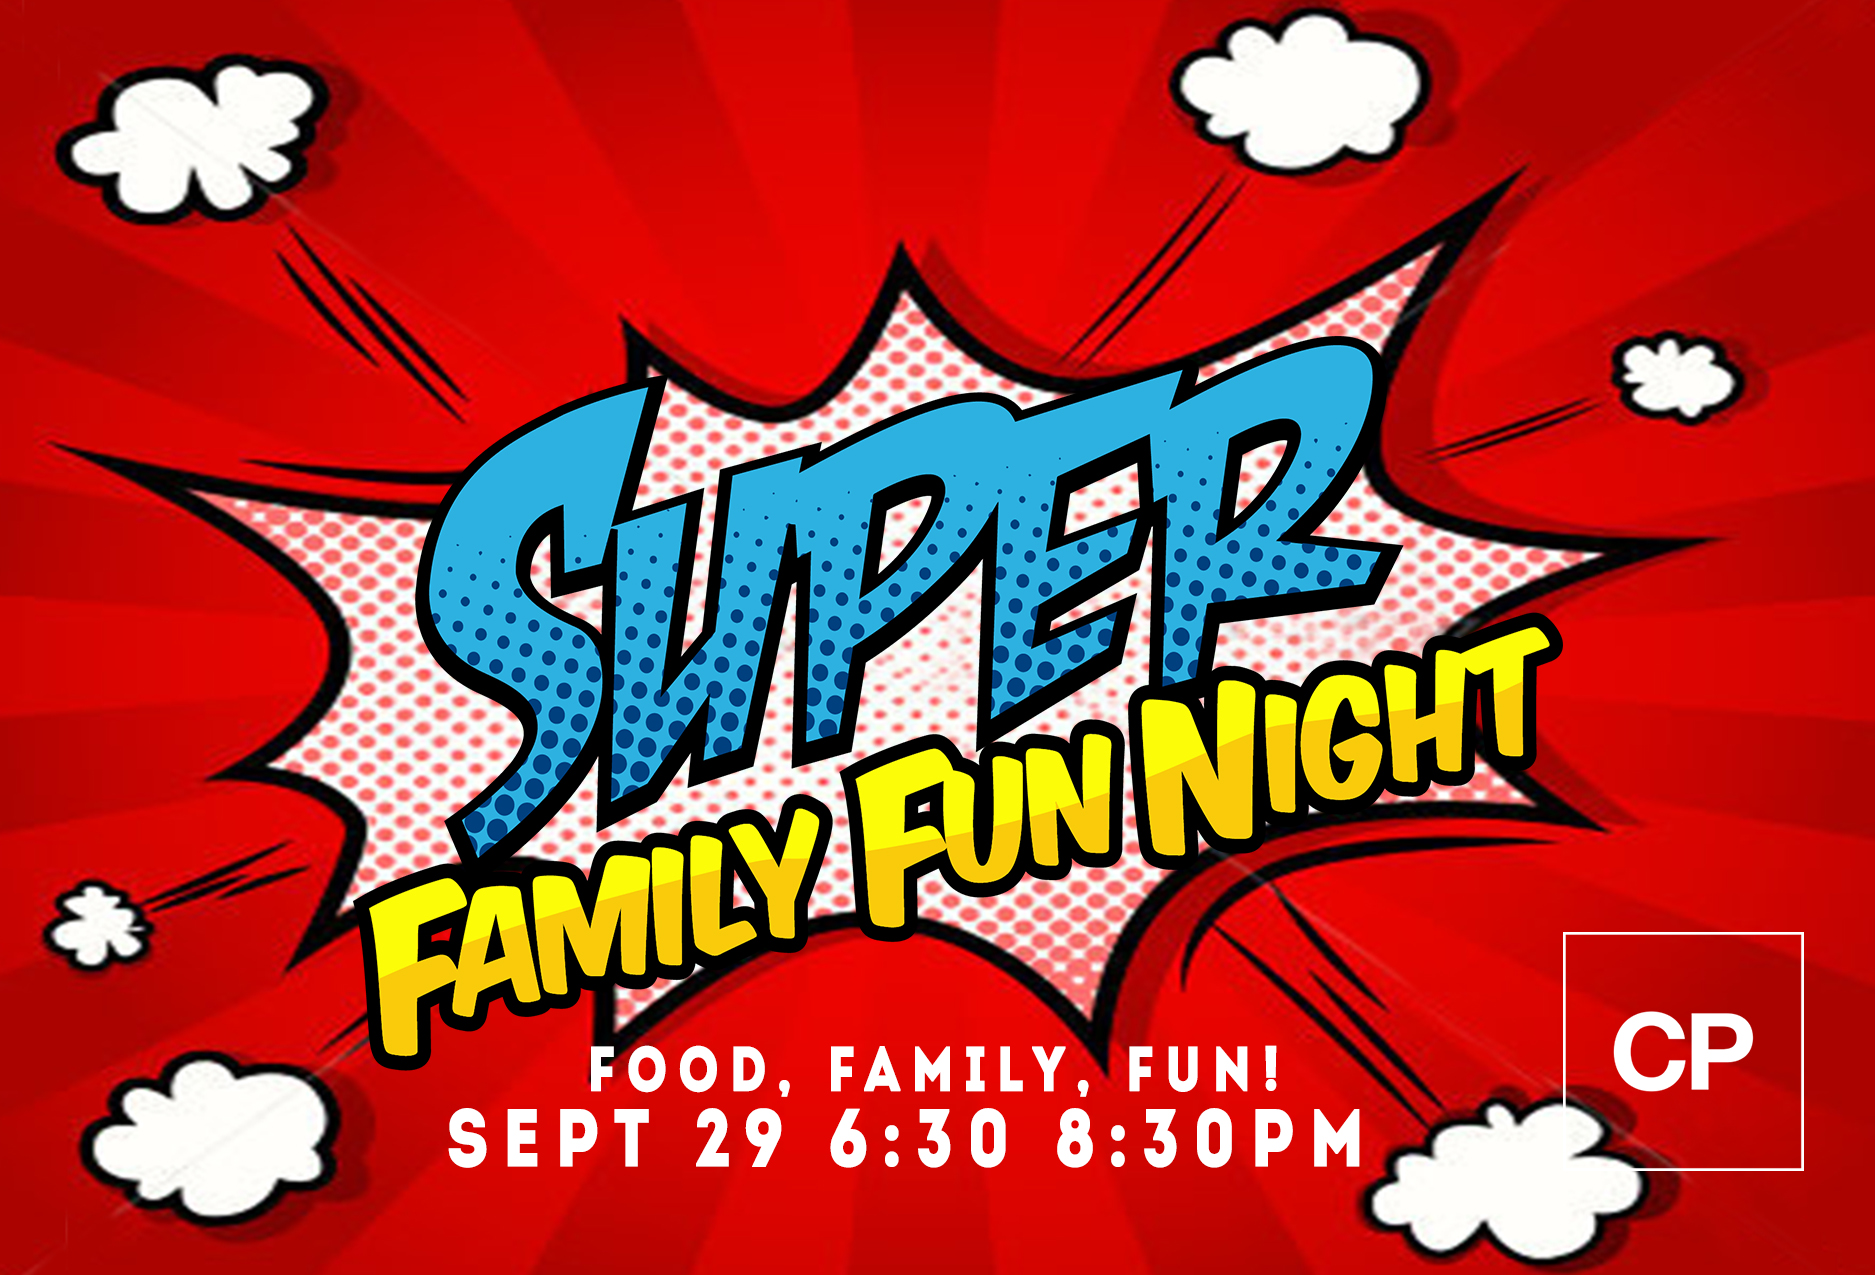 superfamilyfunnight.jpg